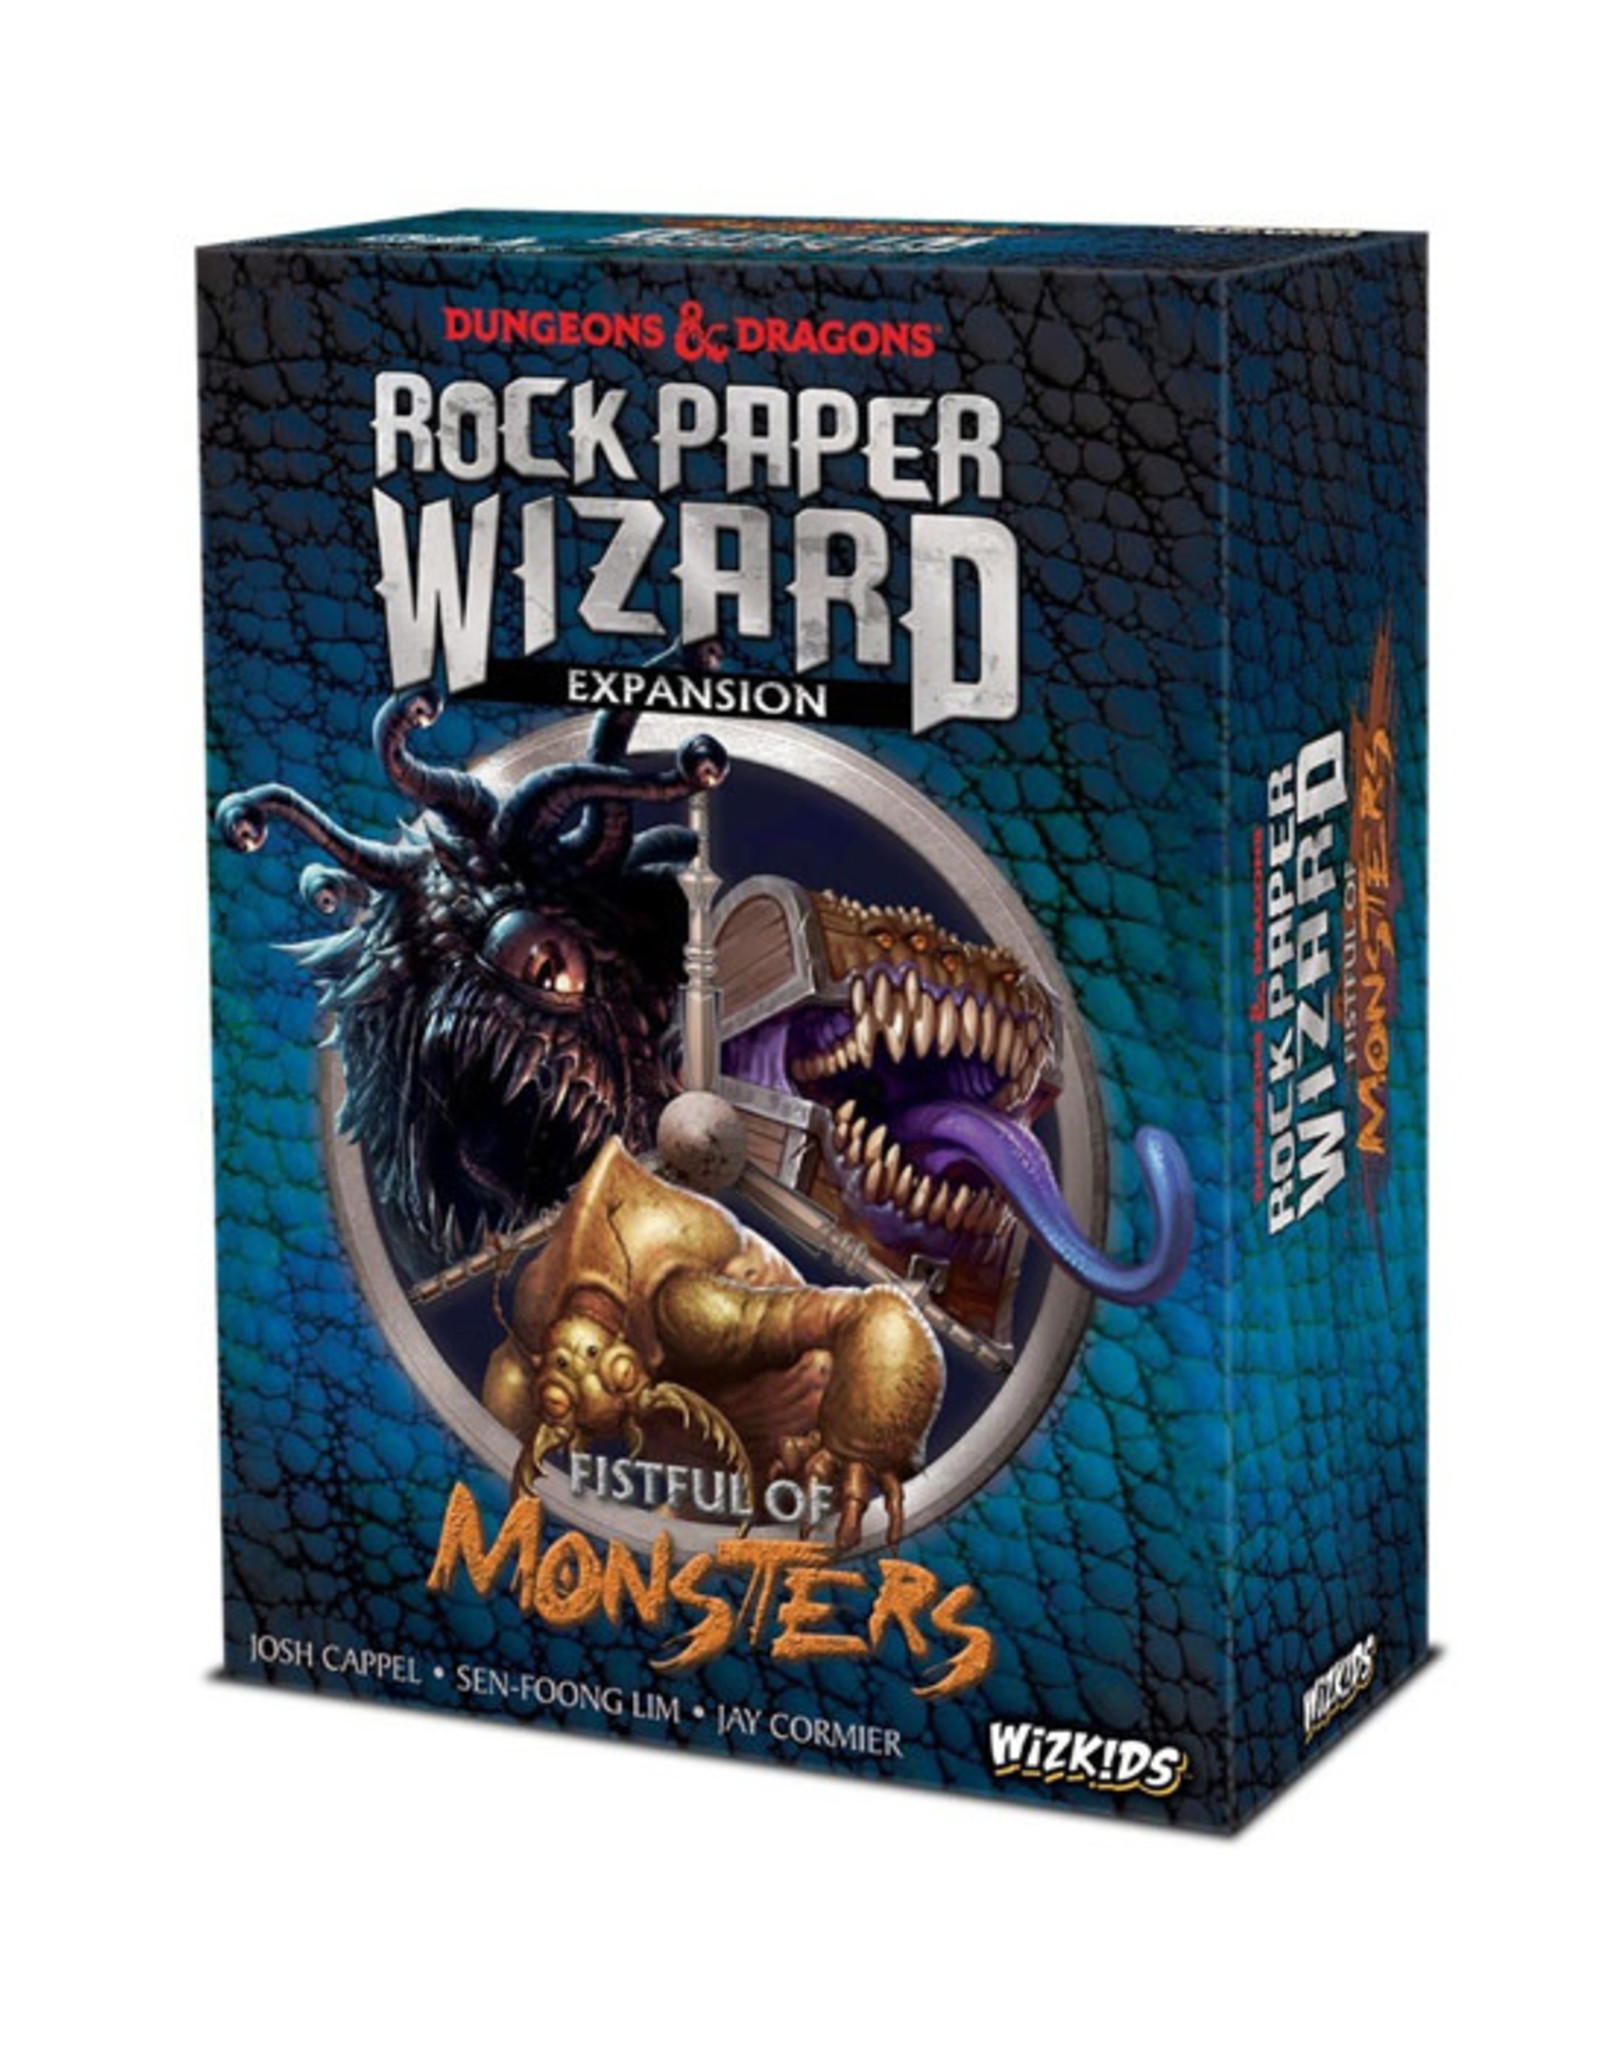 Dungeons & Dragons Dungeons & Dragons: Rock Paper Wizard - Fistful of Monsters Expansion